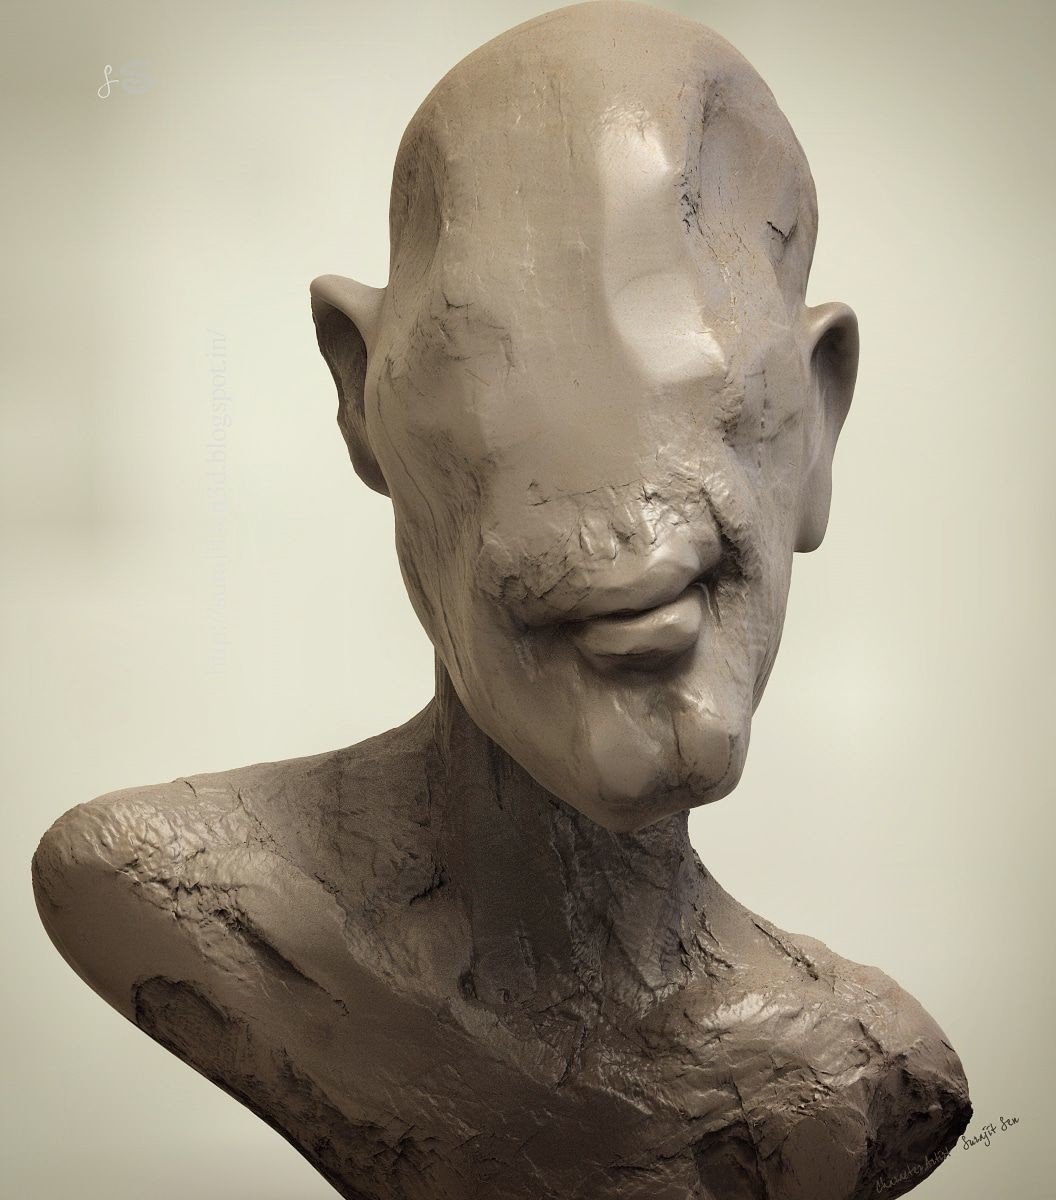 #doodle #quicksculpt #fun   One of my old concept sculpts  :)  Just played with brushes!